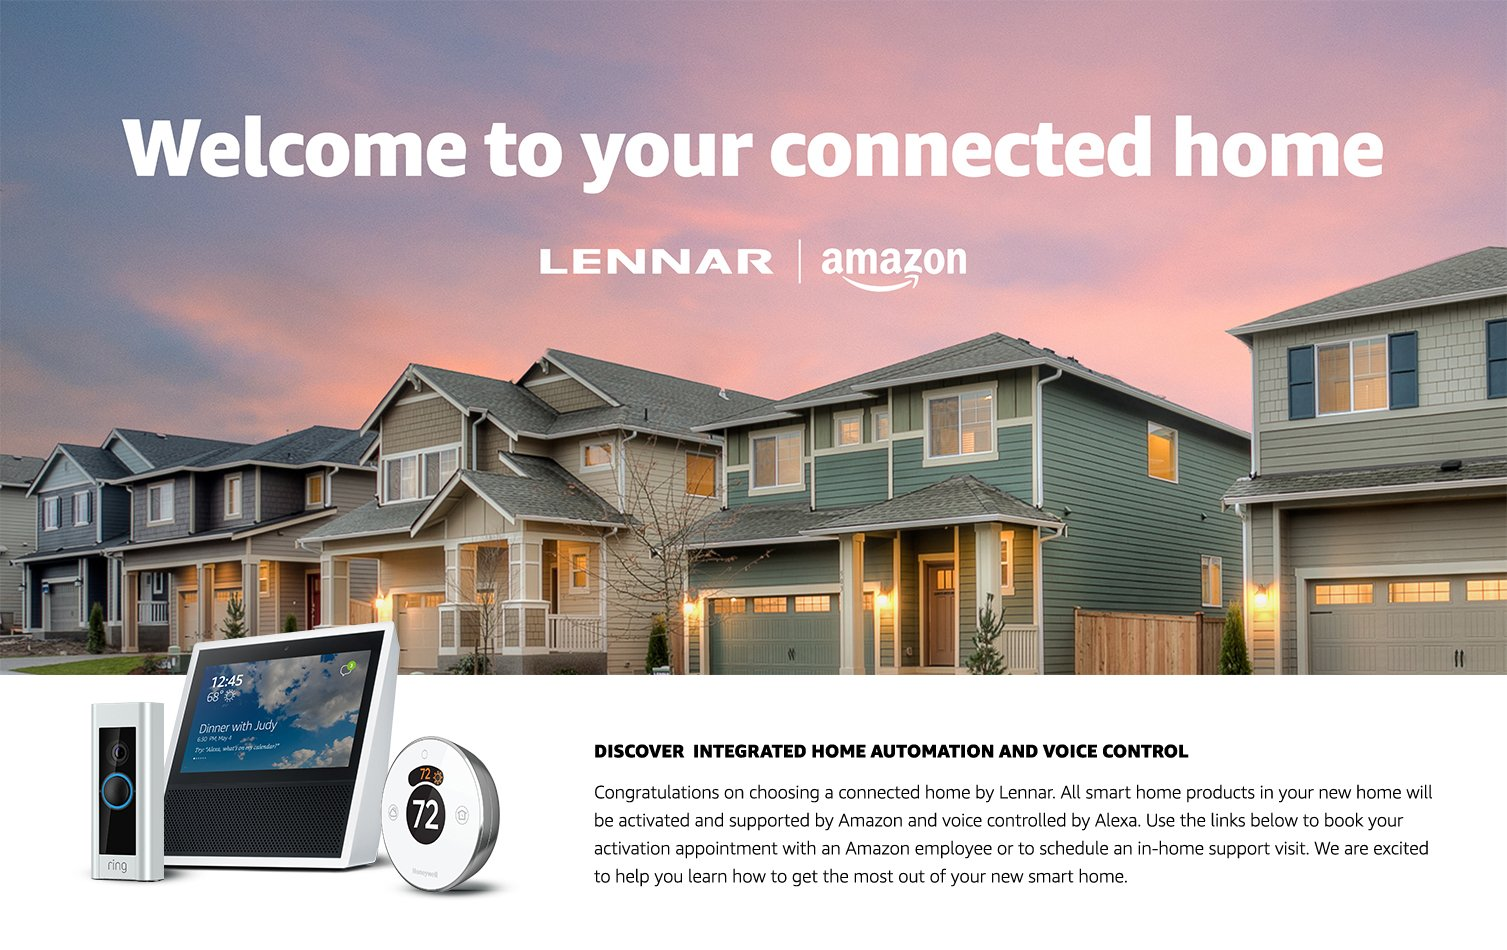 Welcome to your connected home